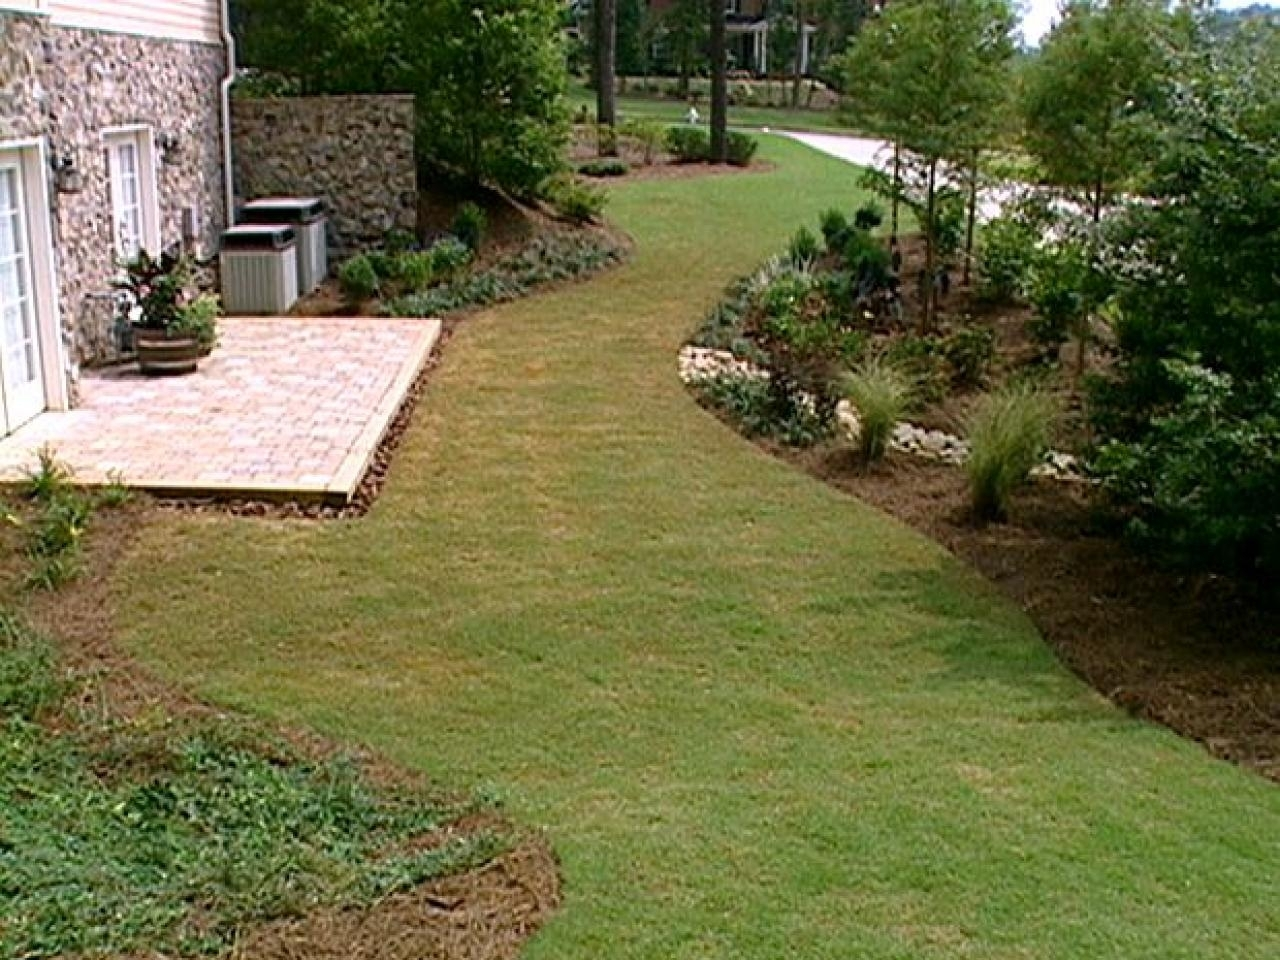 10 Most Recommended Backyard Landscaping Ideas For Privacy %name 2020